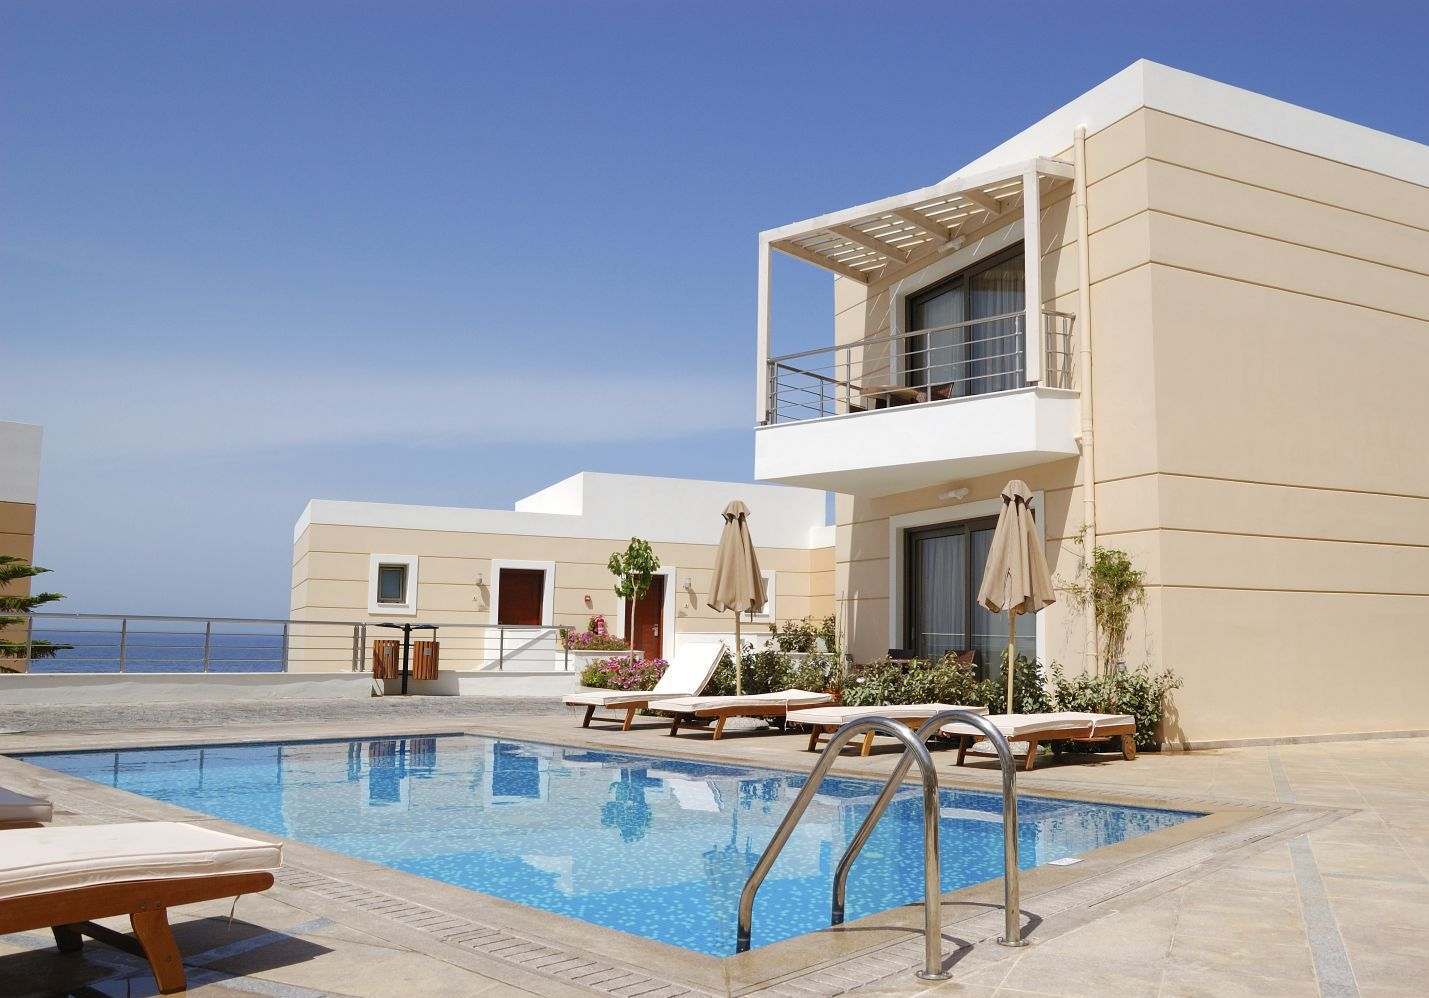 Luxury house with pool